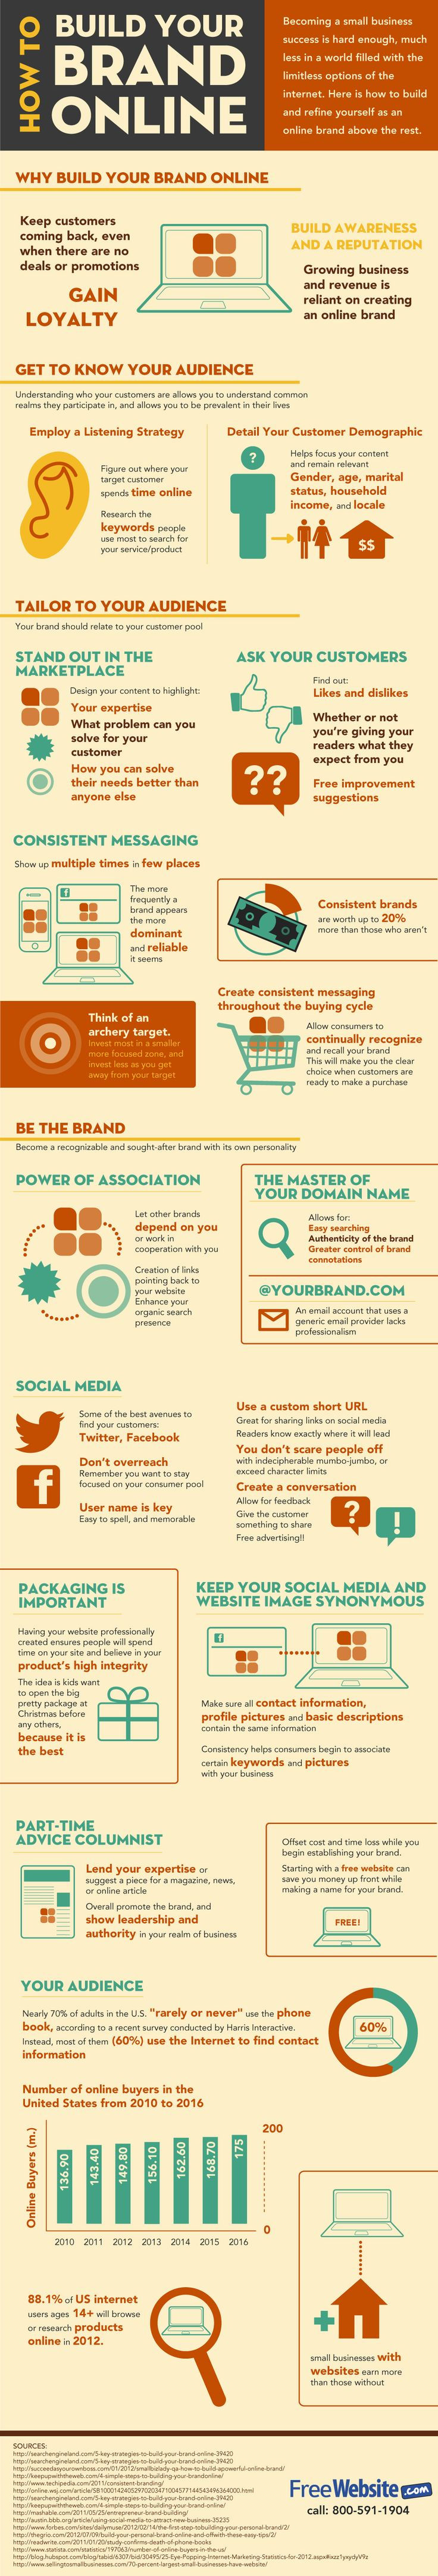 How To Build Your Brand Online [INFOGRAPHIC]